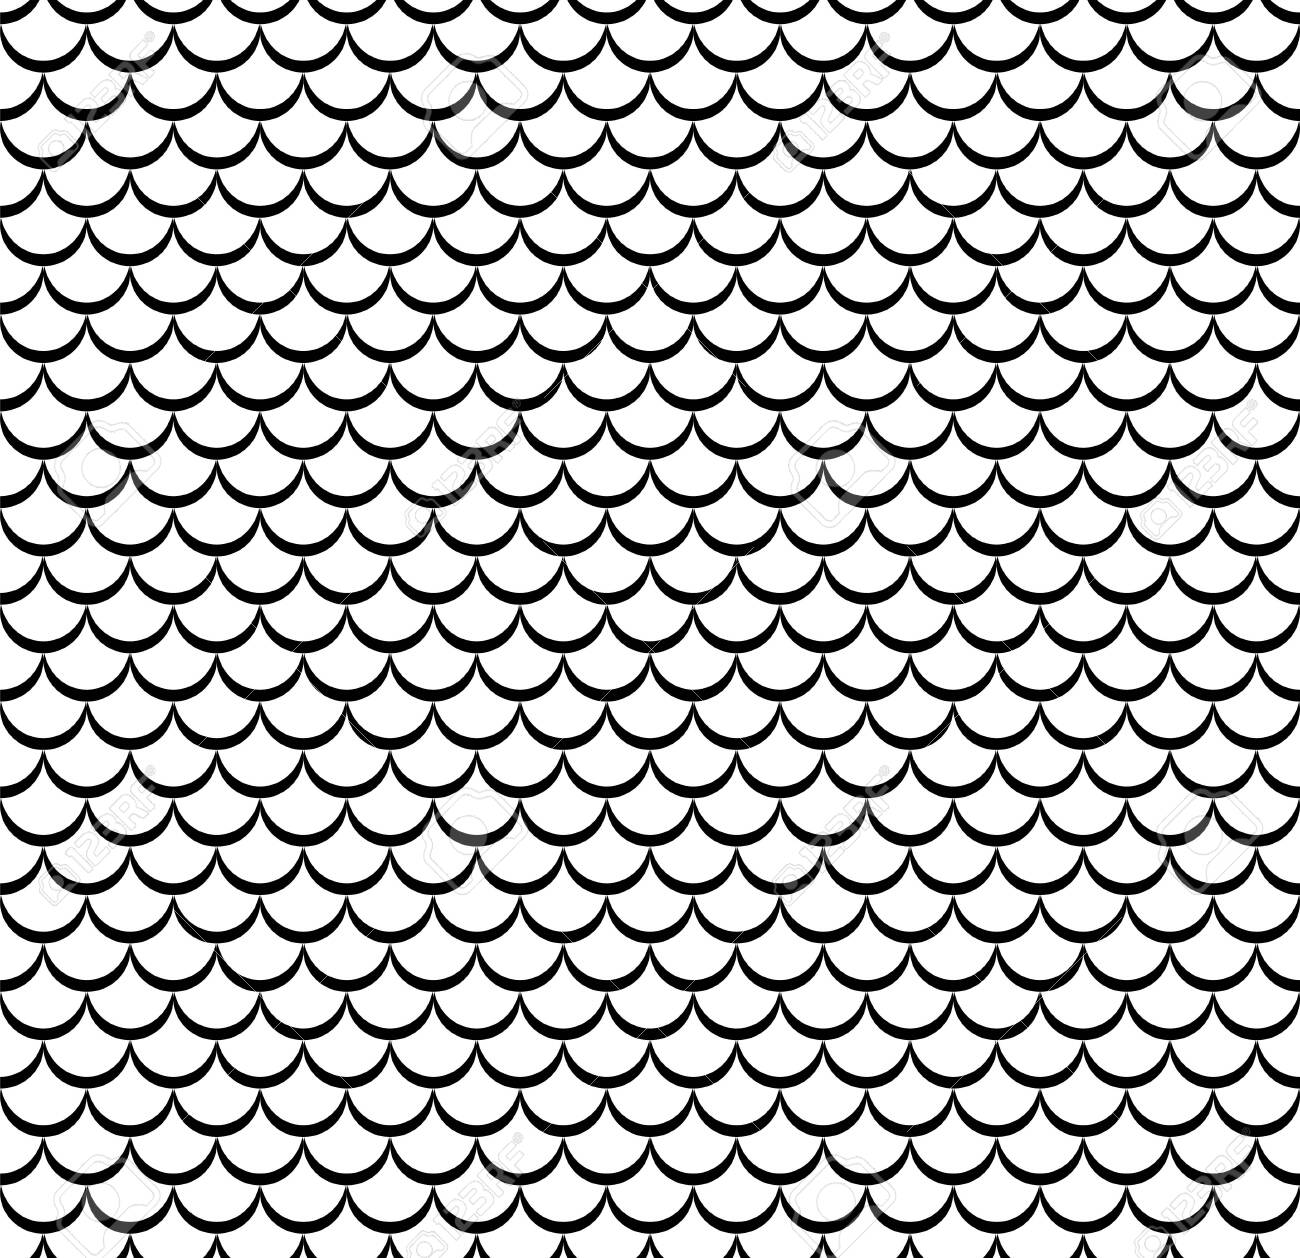 Waves lines design elements pattern chinese style - 142904466